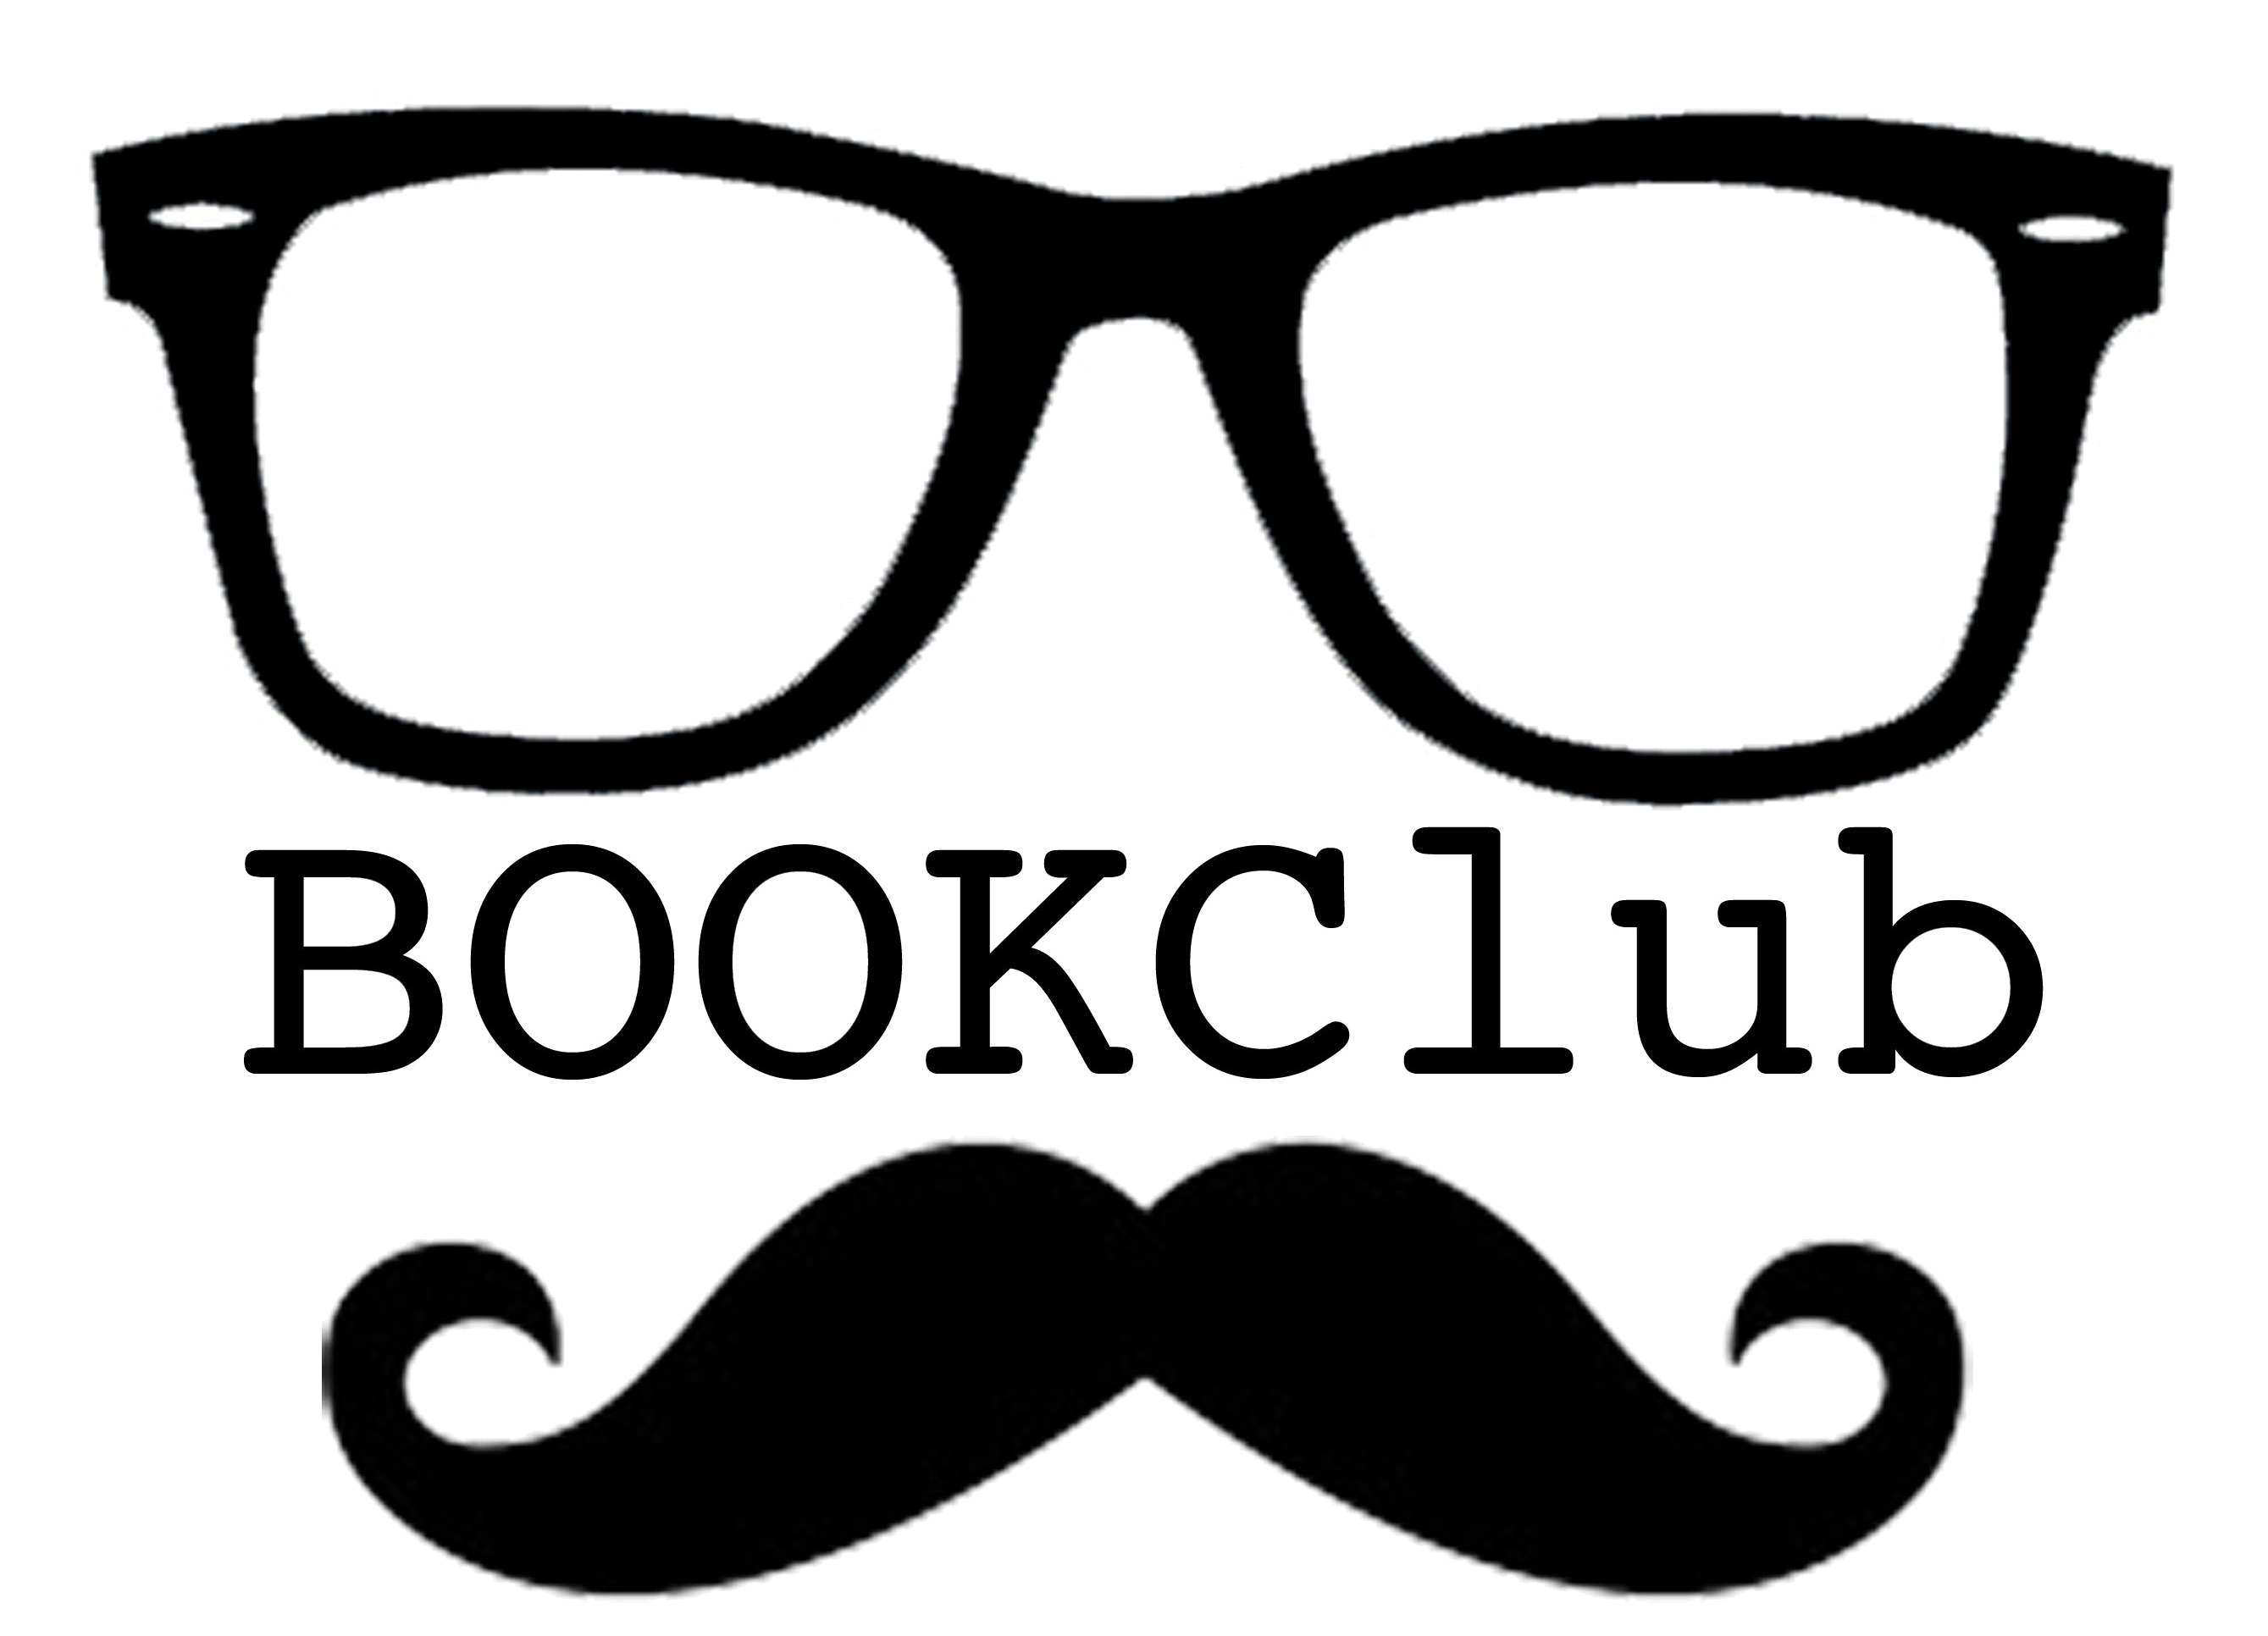 Book club clipart black and white banner 28+ Collection of Book Club Clipart Black And White | High quality ... banner